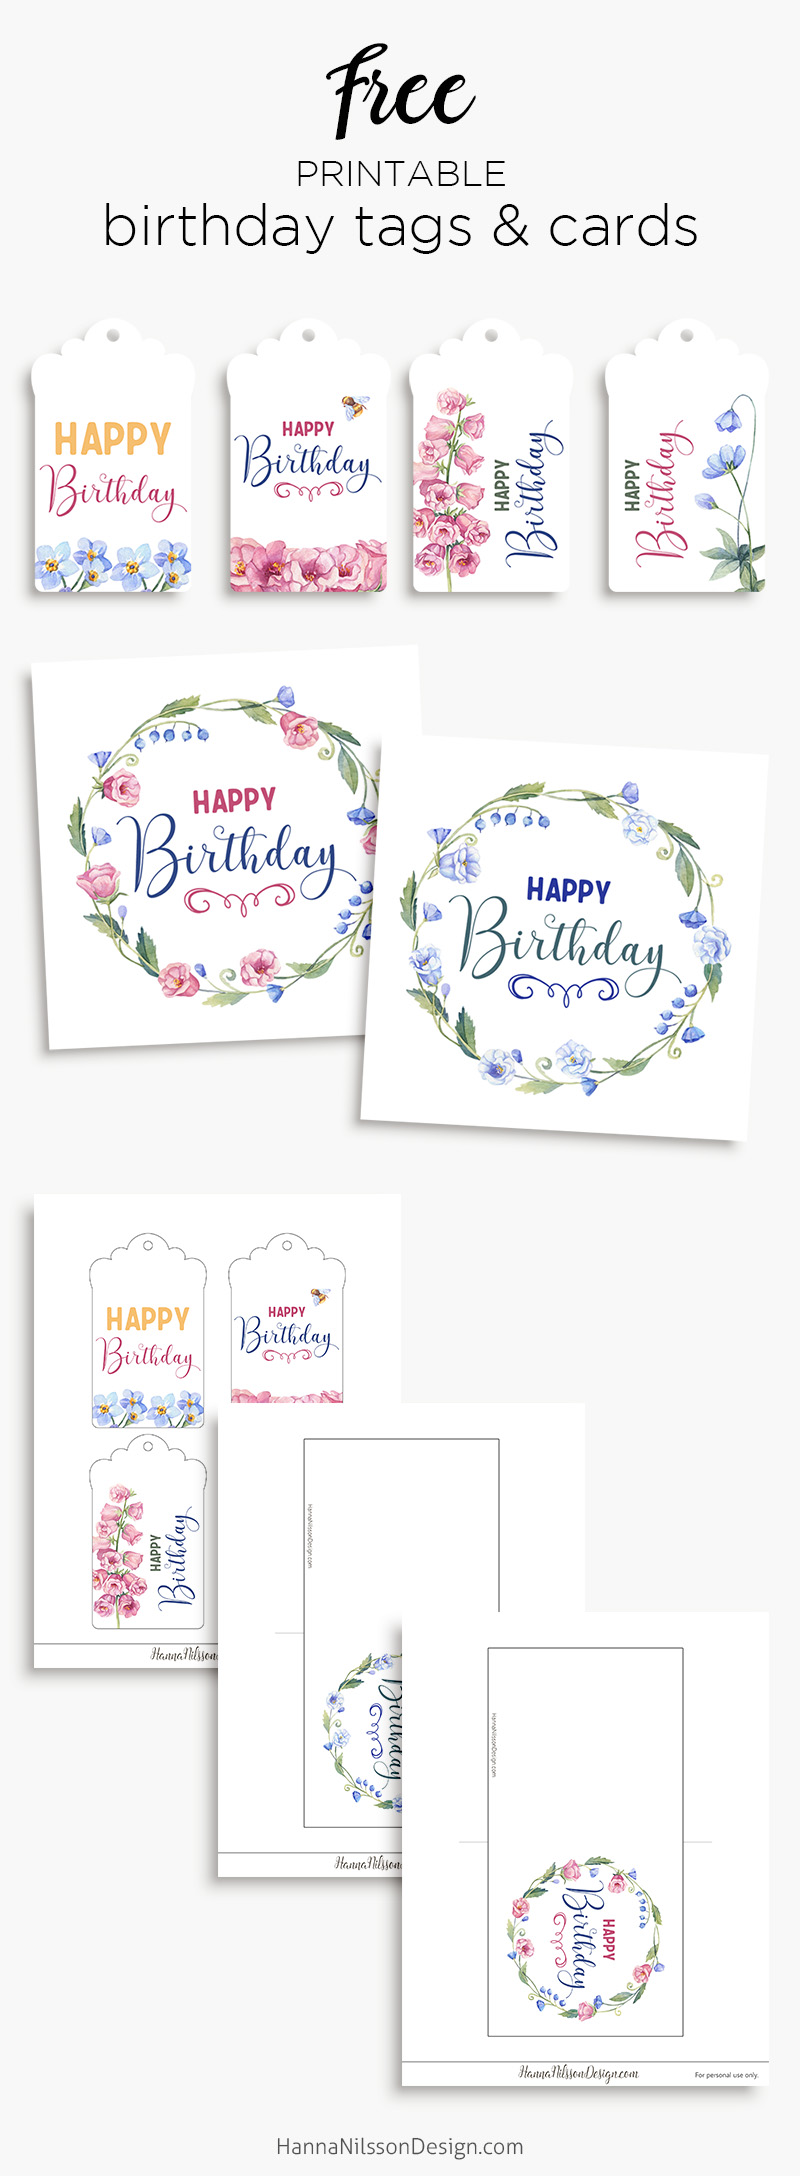 image relating to Free Printable Birthday Tags known as Birthday tags playing cards Free of charge floral printables Hanna